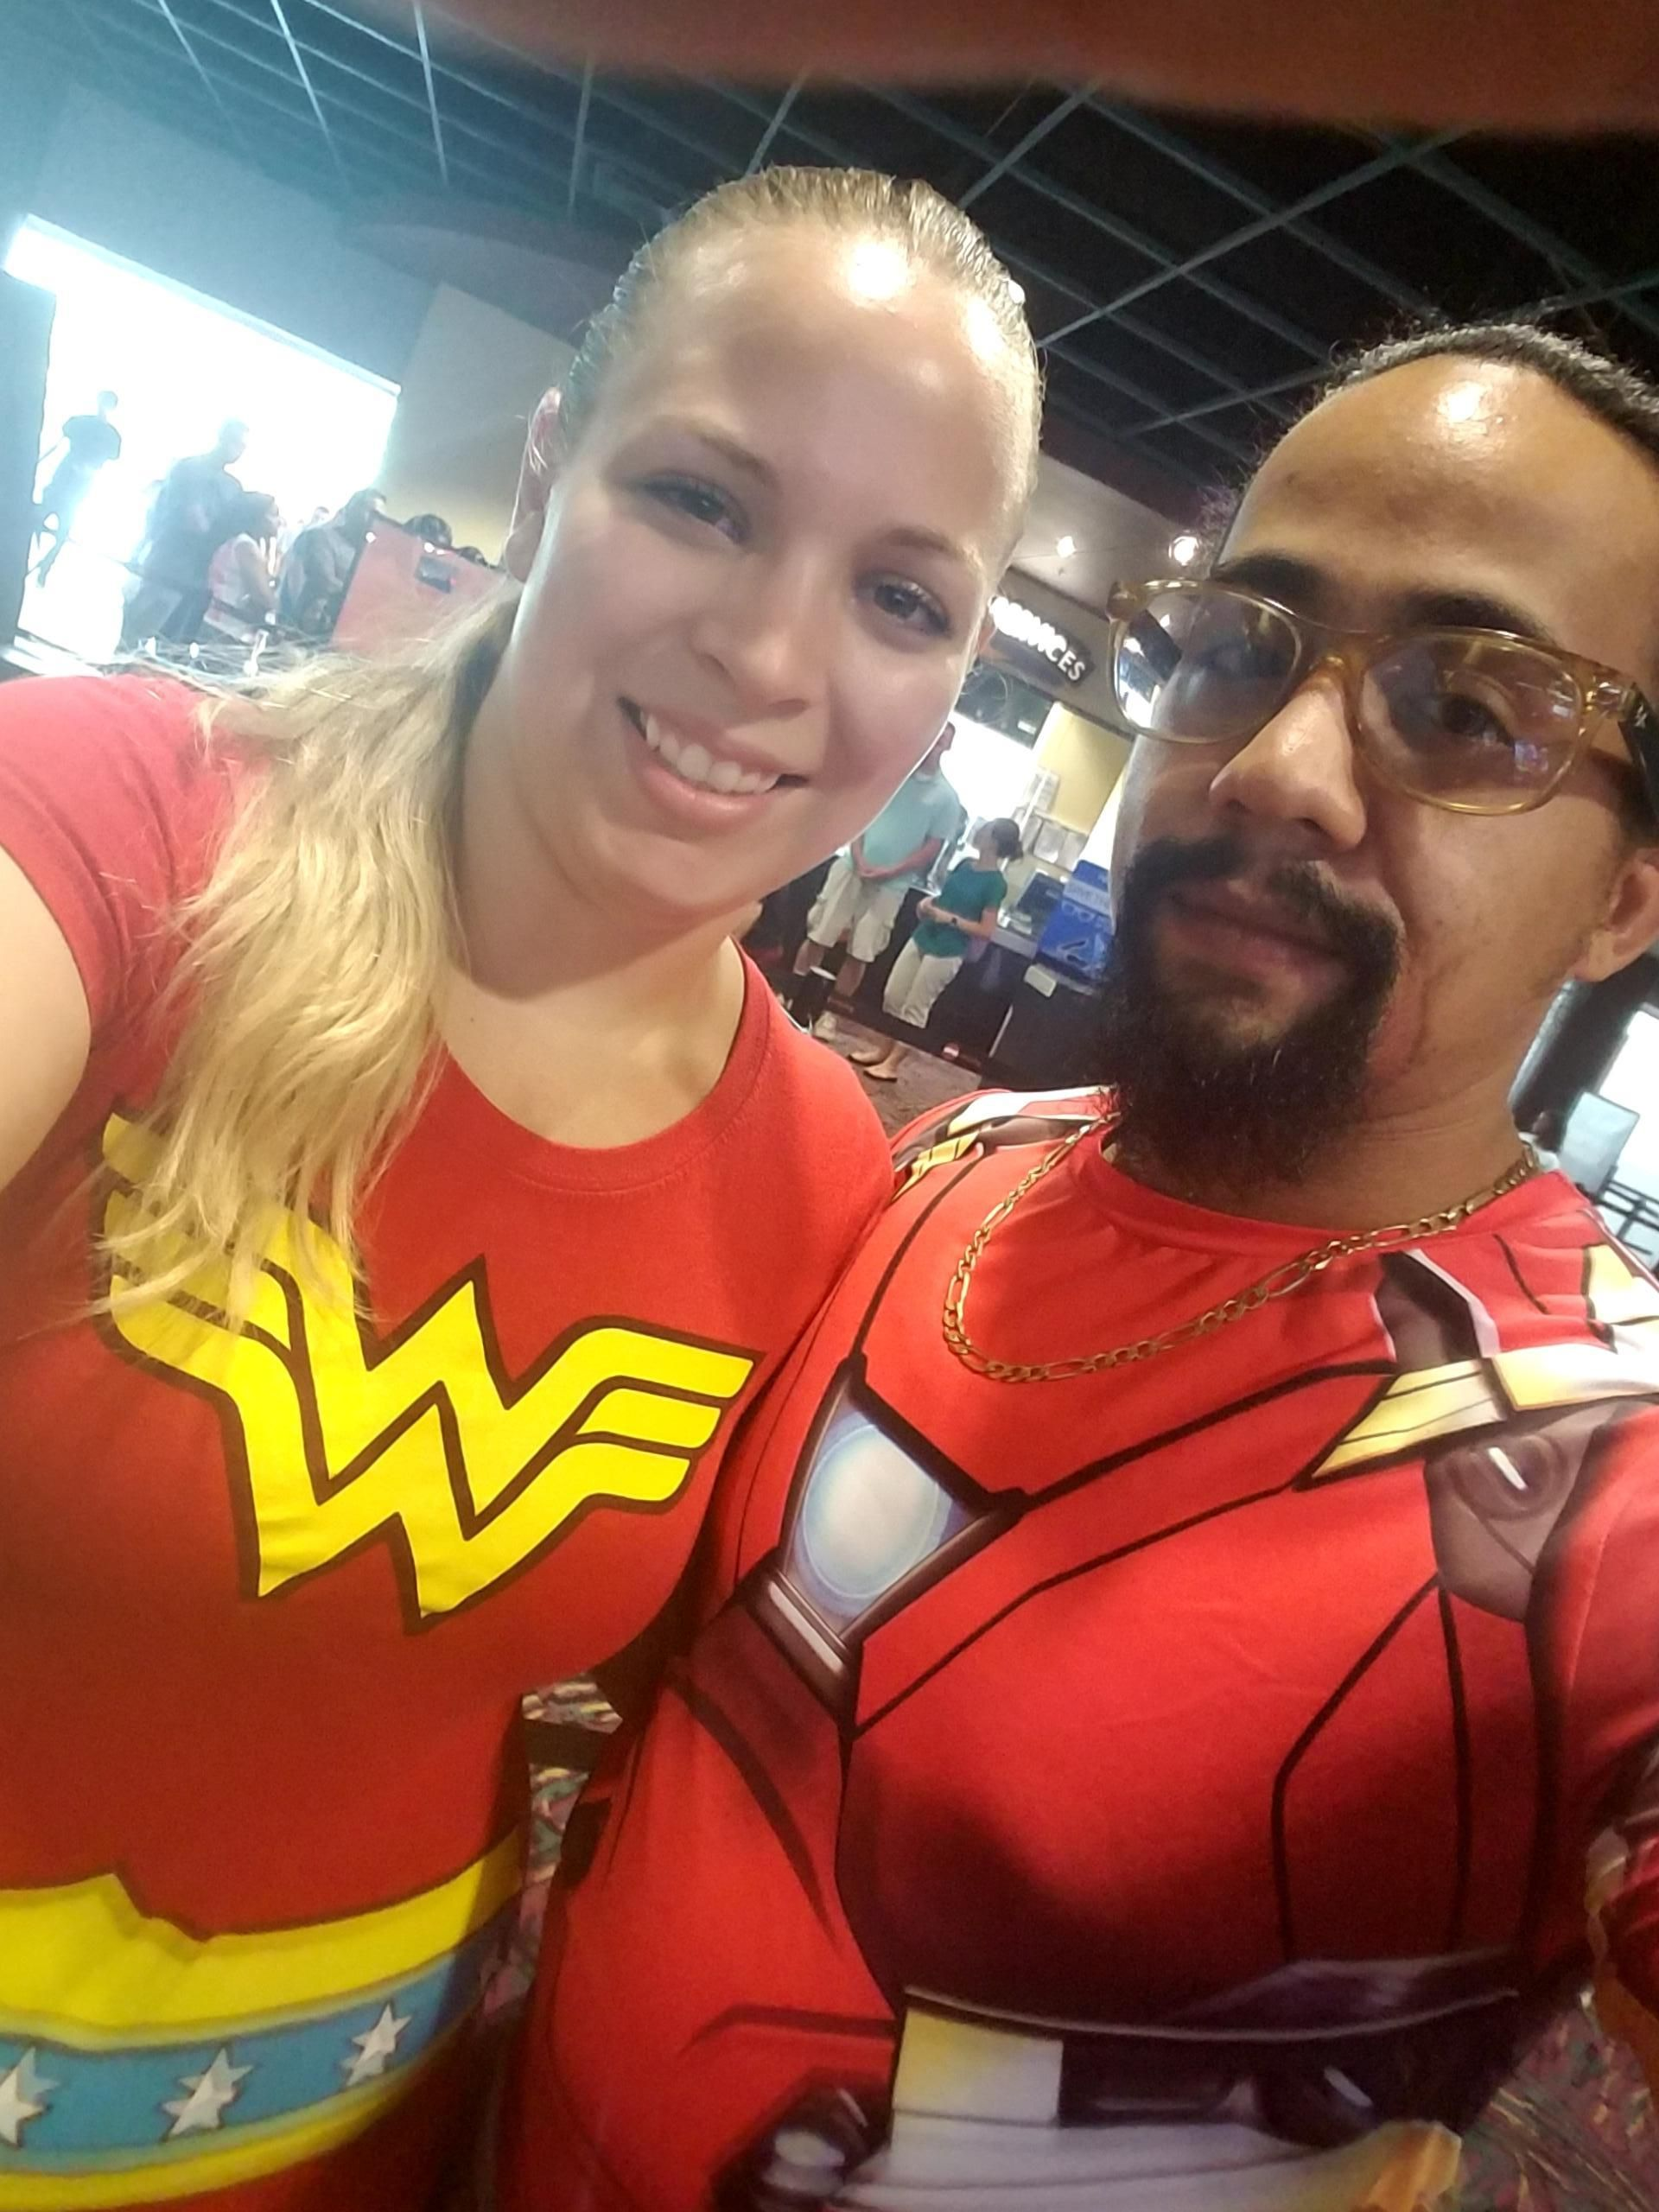 meet altamonte springs singles Meet single parents in altamonte springs, florida online & connect in the chat rooms dhu is a 100% free dating site to find single parents.